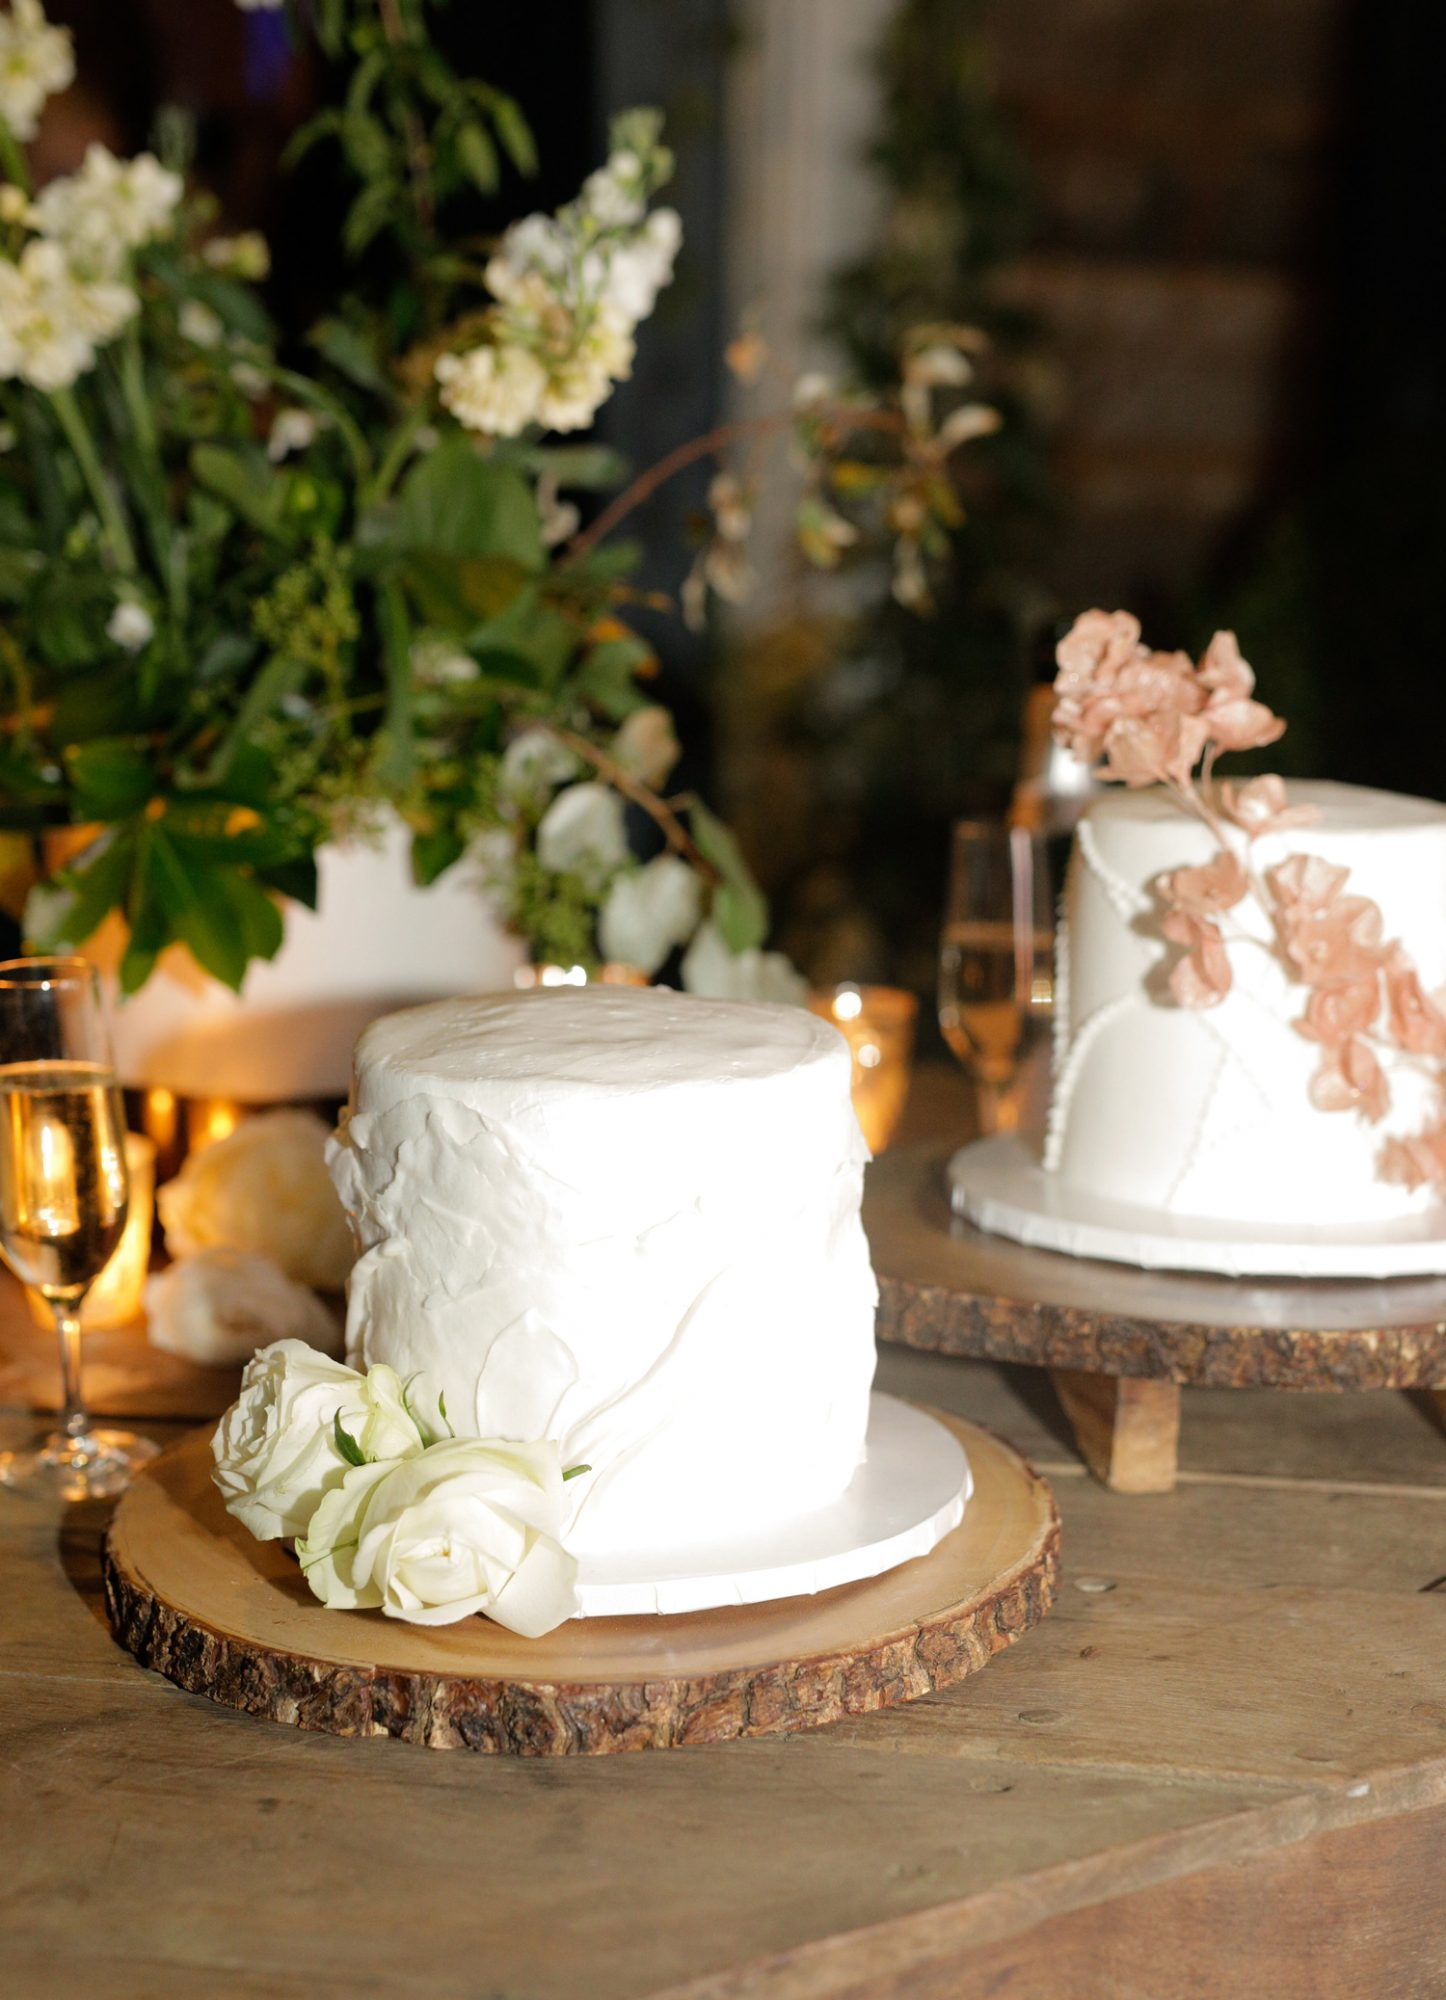 two white wedding cakes decorated with flowers